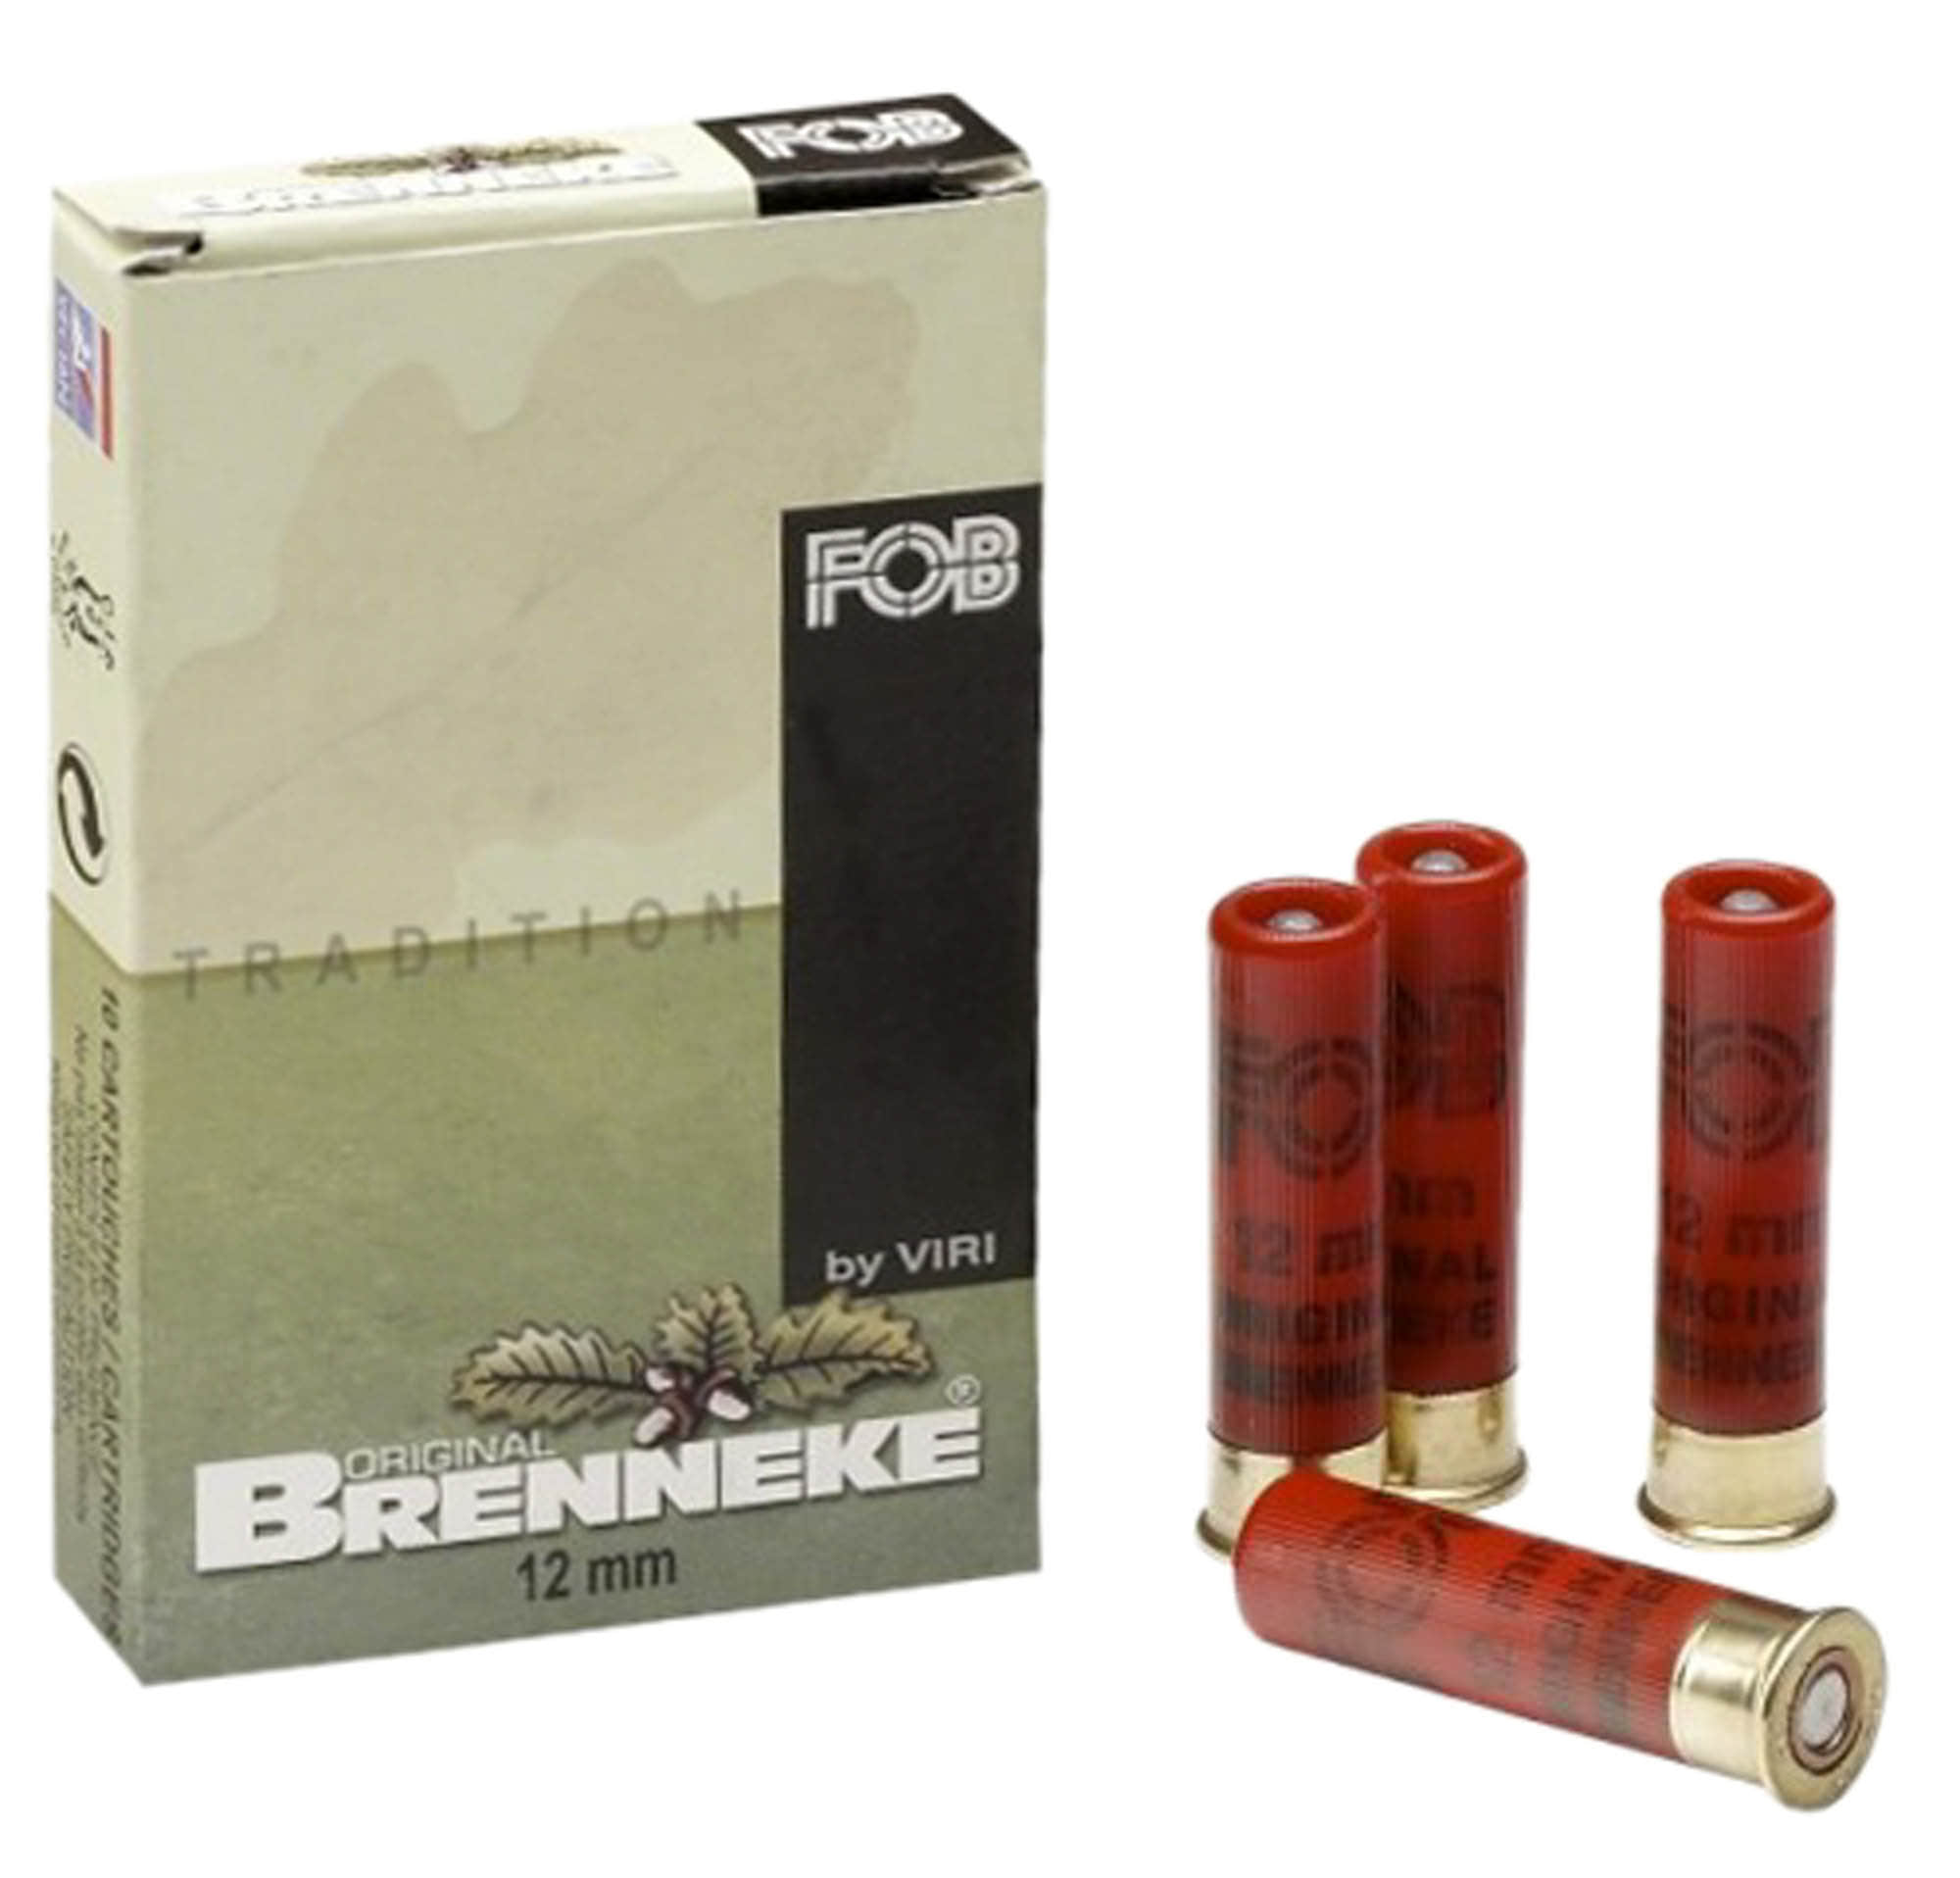 MF1012-2-Fob tradition petites munitions - calibres 12mm à balle - MF1012